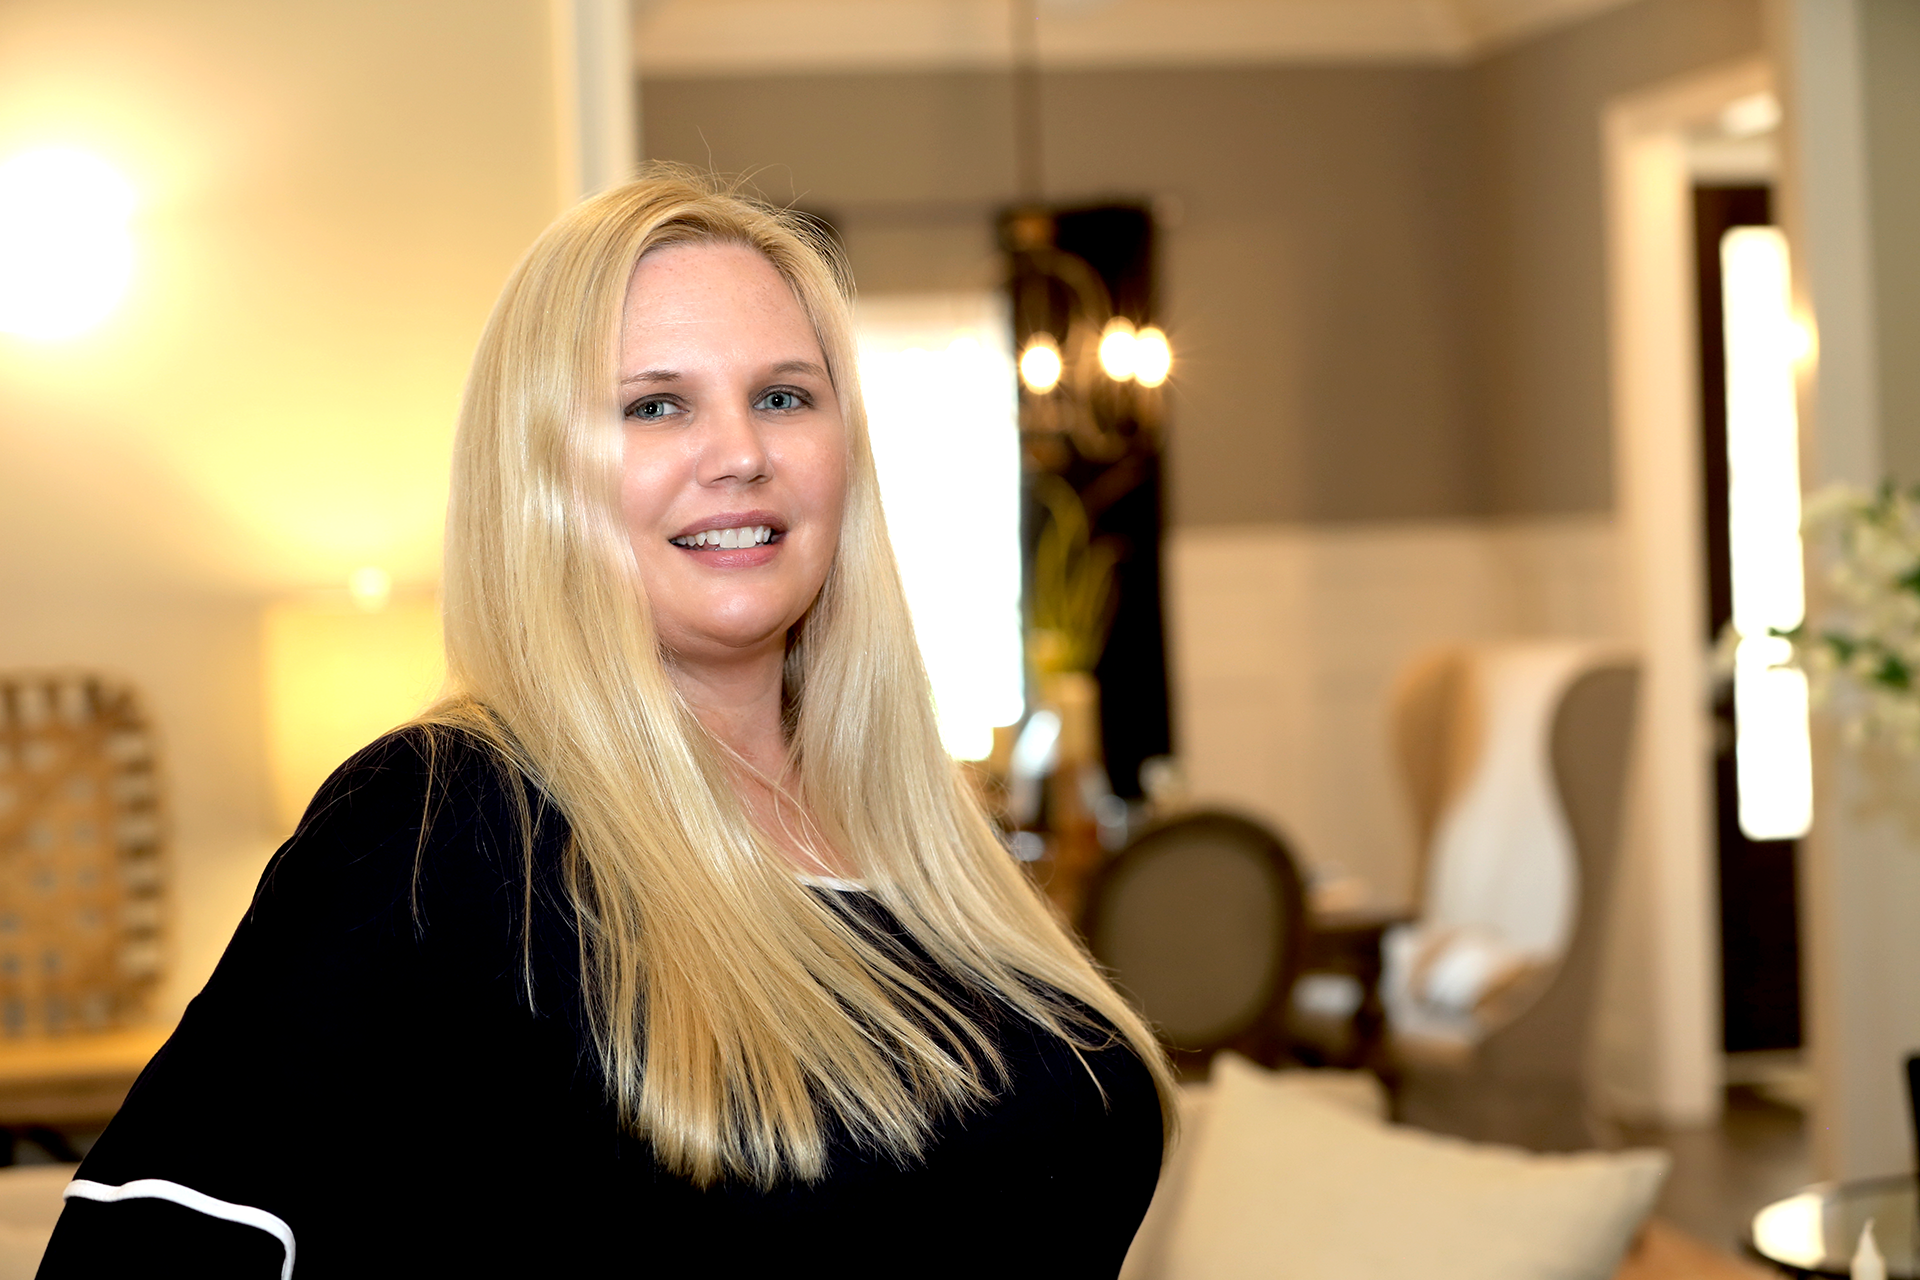 ADRIA BONNIVILLE - North Alabama Title and Escrow is locally owned and operated by Adria Bonniville. She has served the greater Huntsville metro area for over 17 years and is experienced in every aspect of title and escrow services. Give Adria a call today!